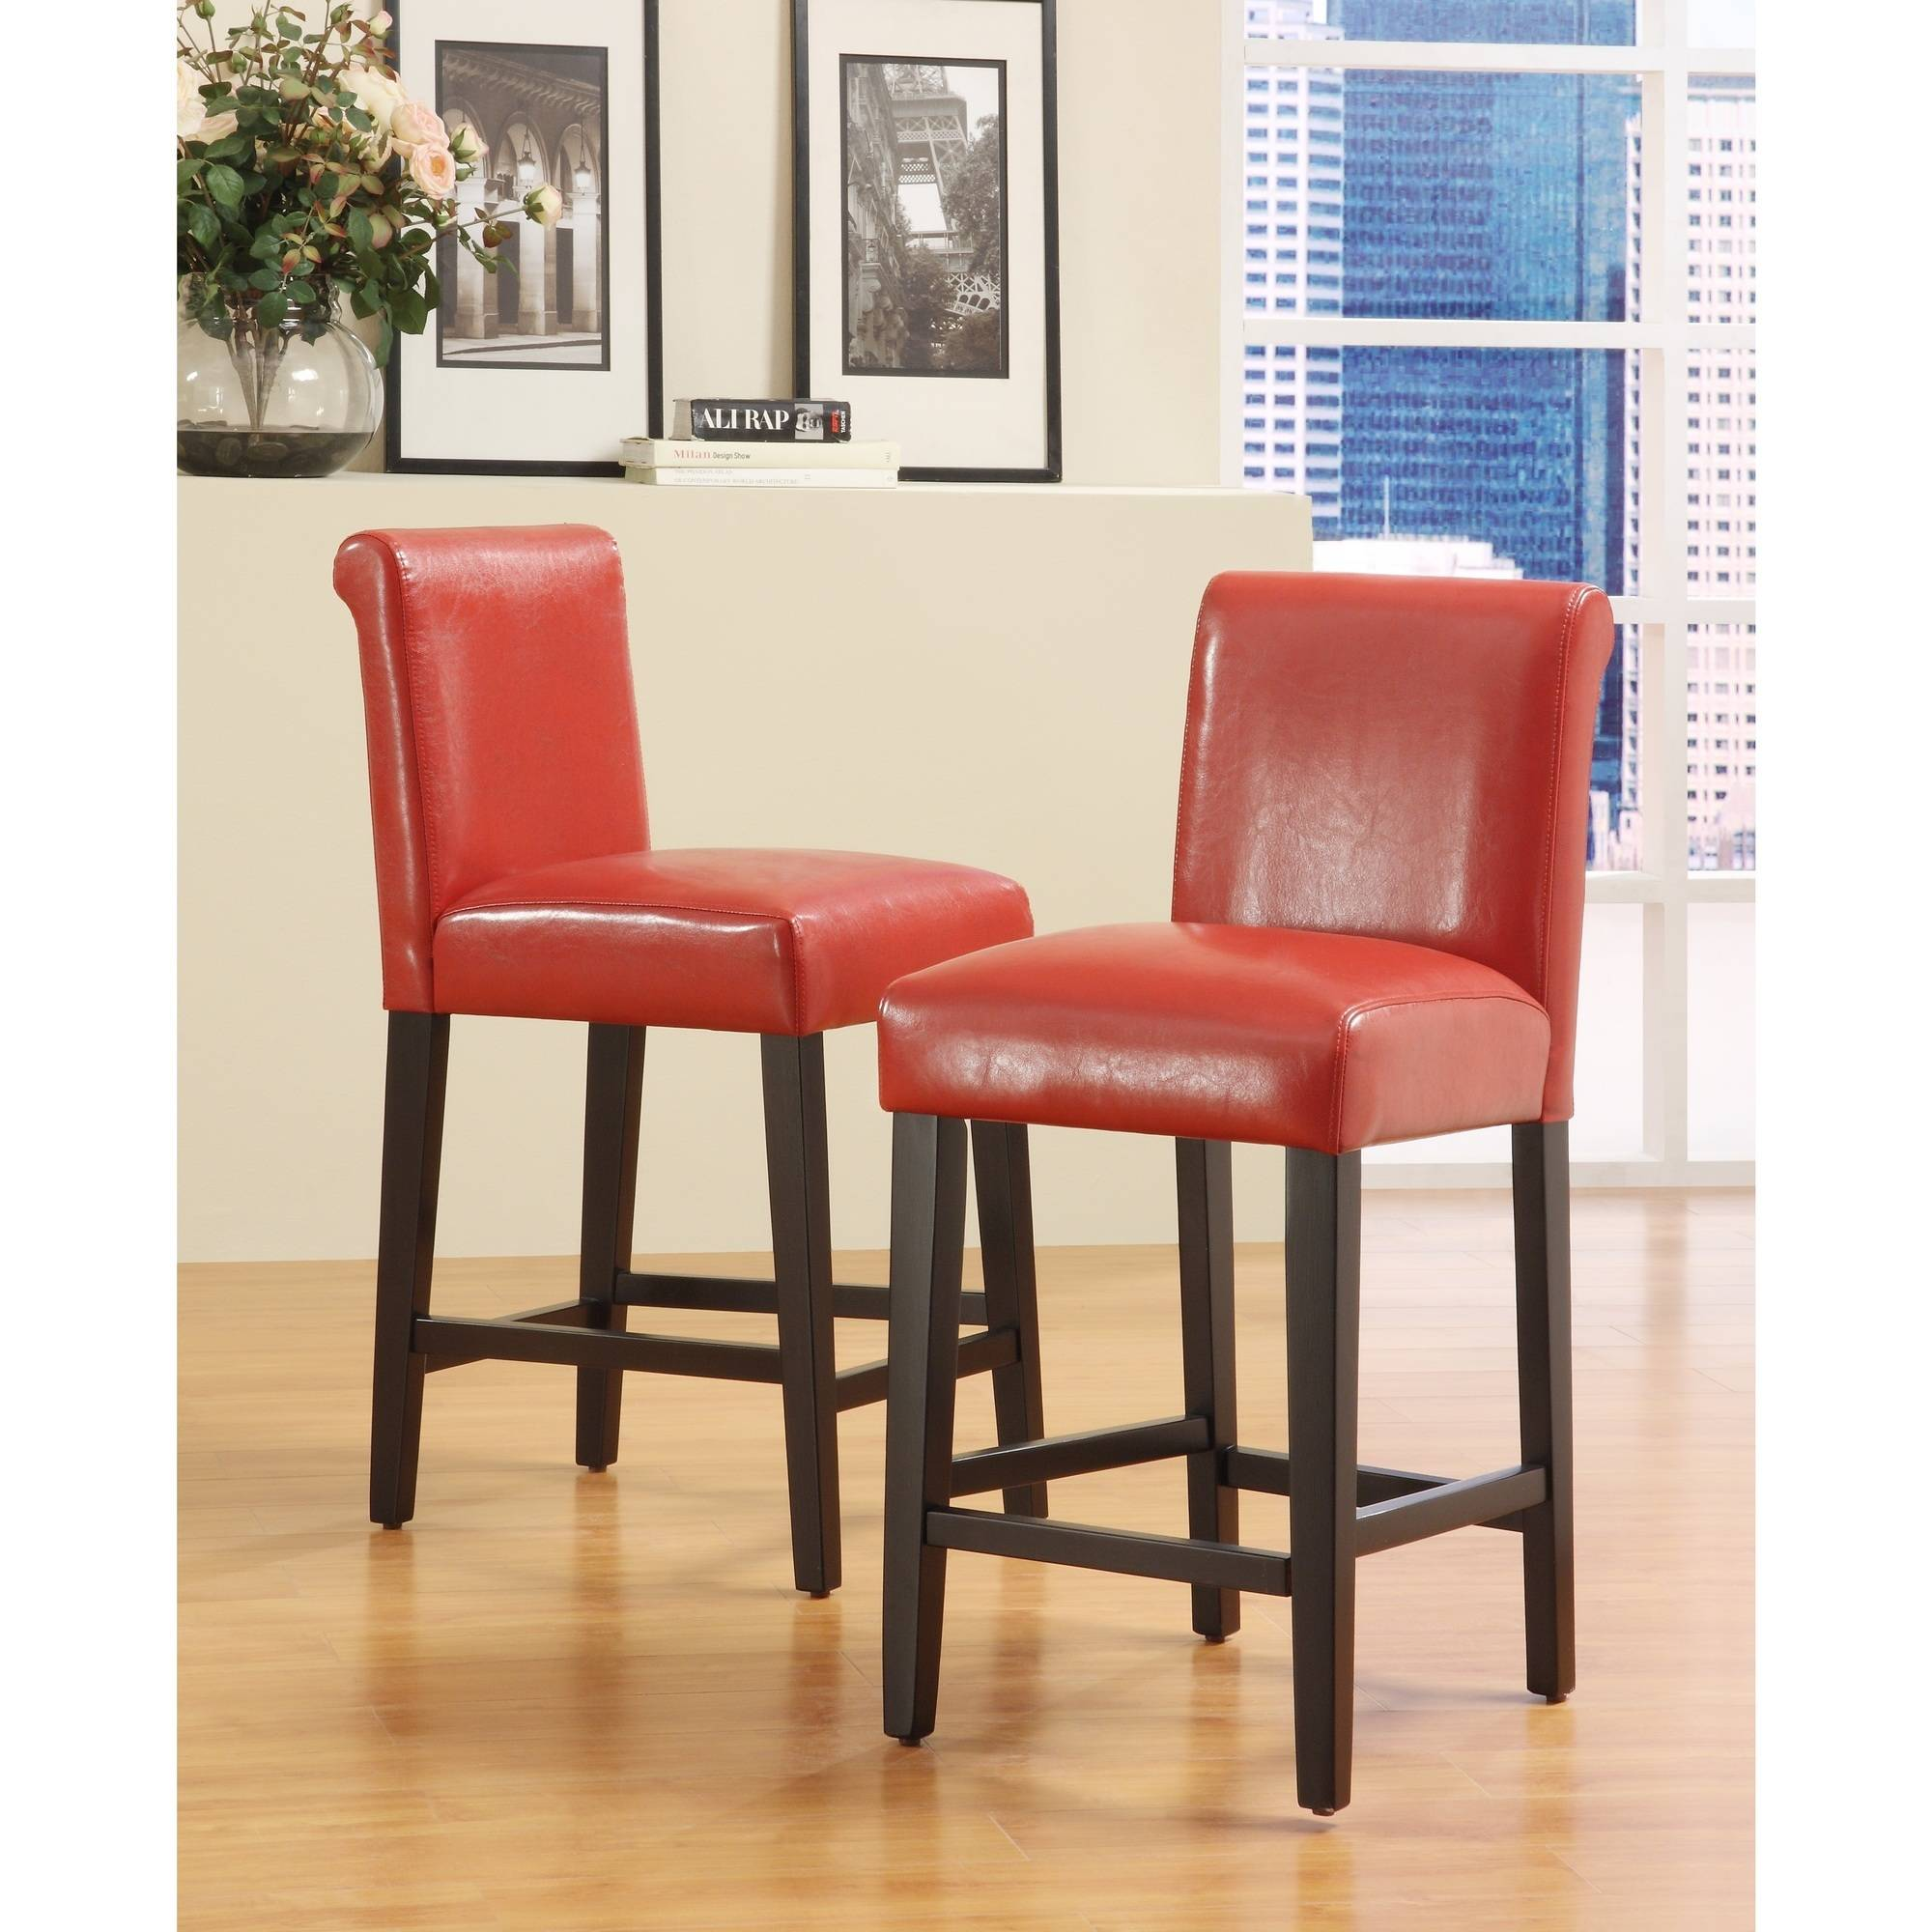 "Arica Barstools 29"", Set of 2, Multiple Colors"